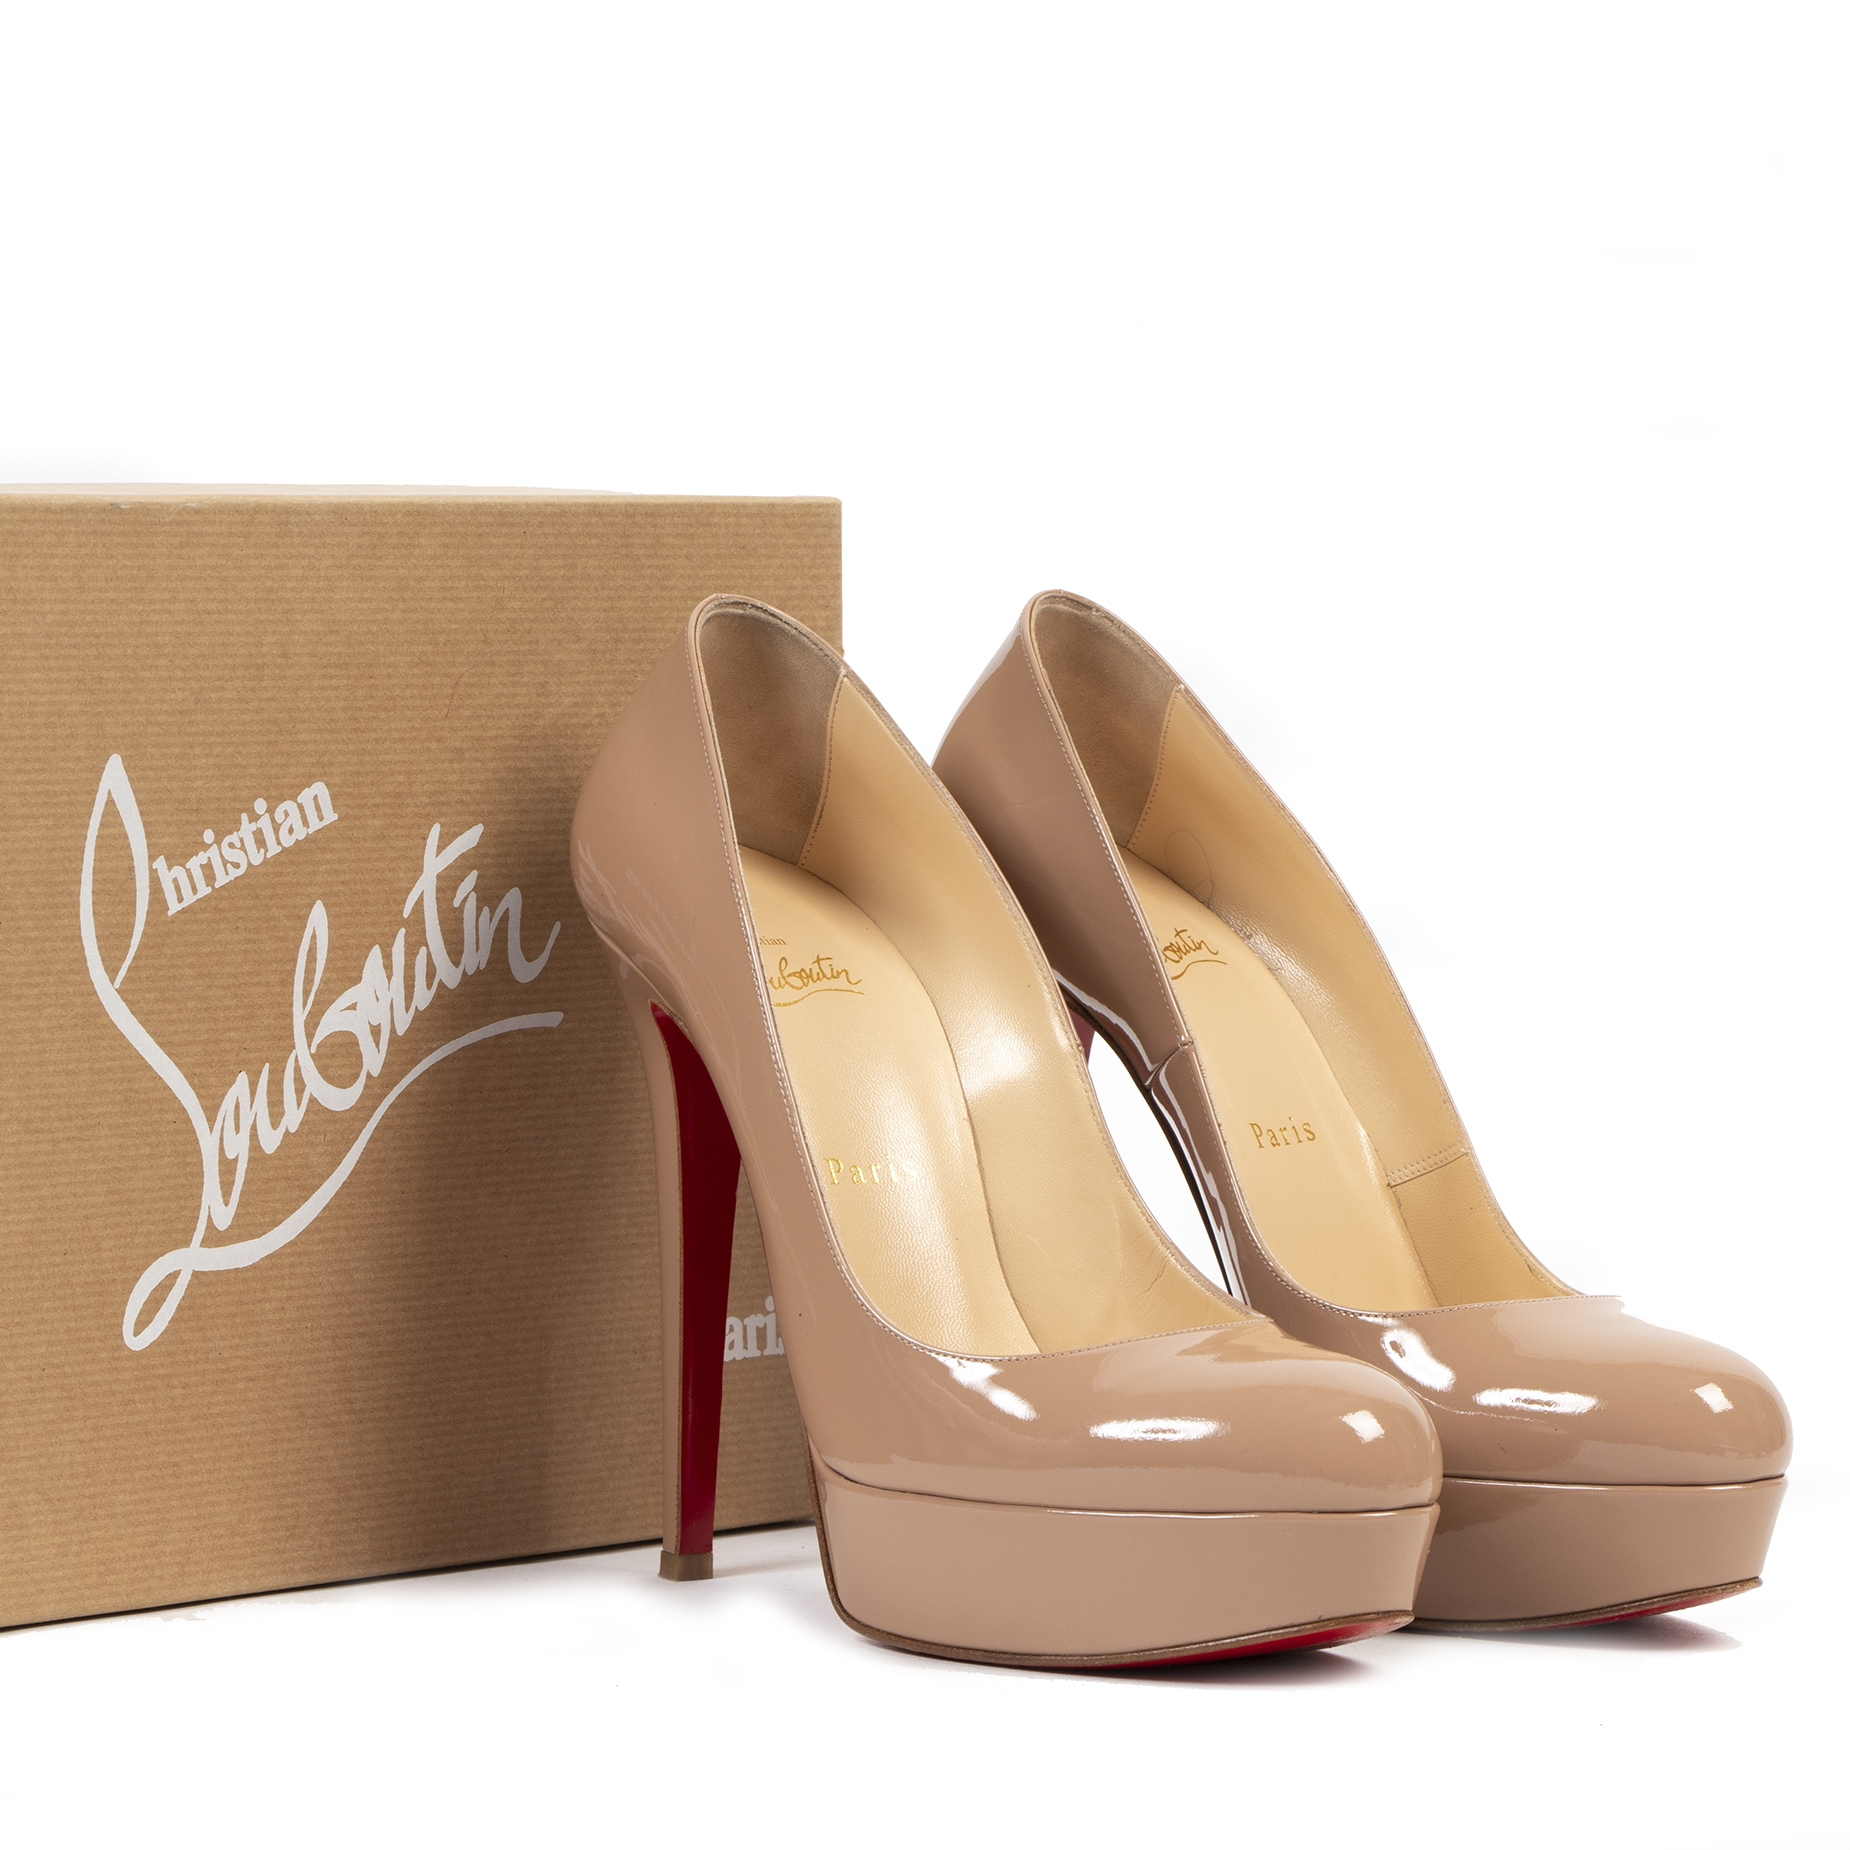 acheter en ligne seconde main Christian Louboutin Bianca 140 Patent Leather Nude Pumps - Size 40